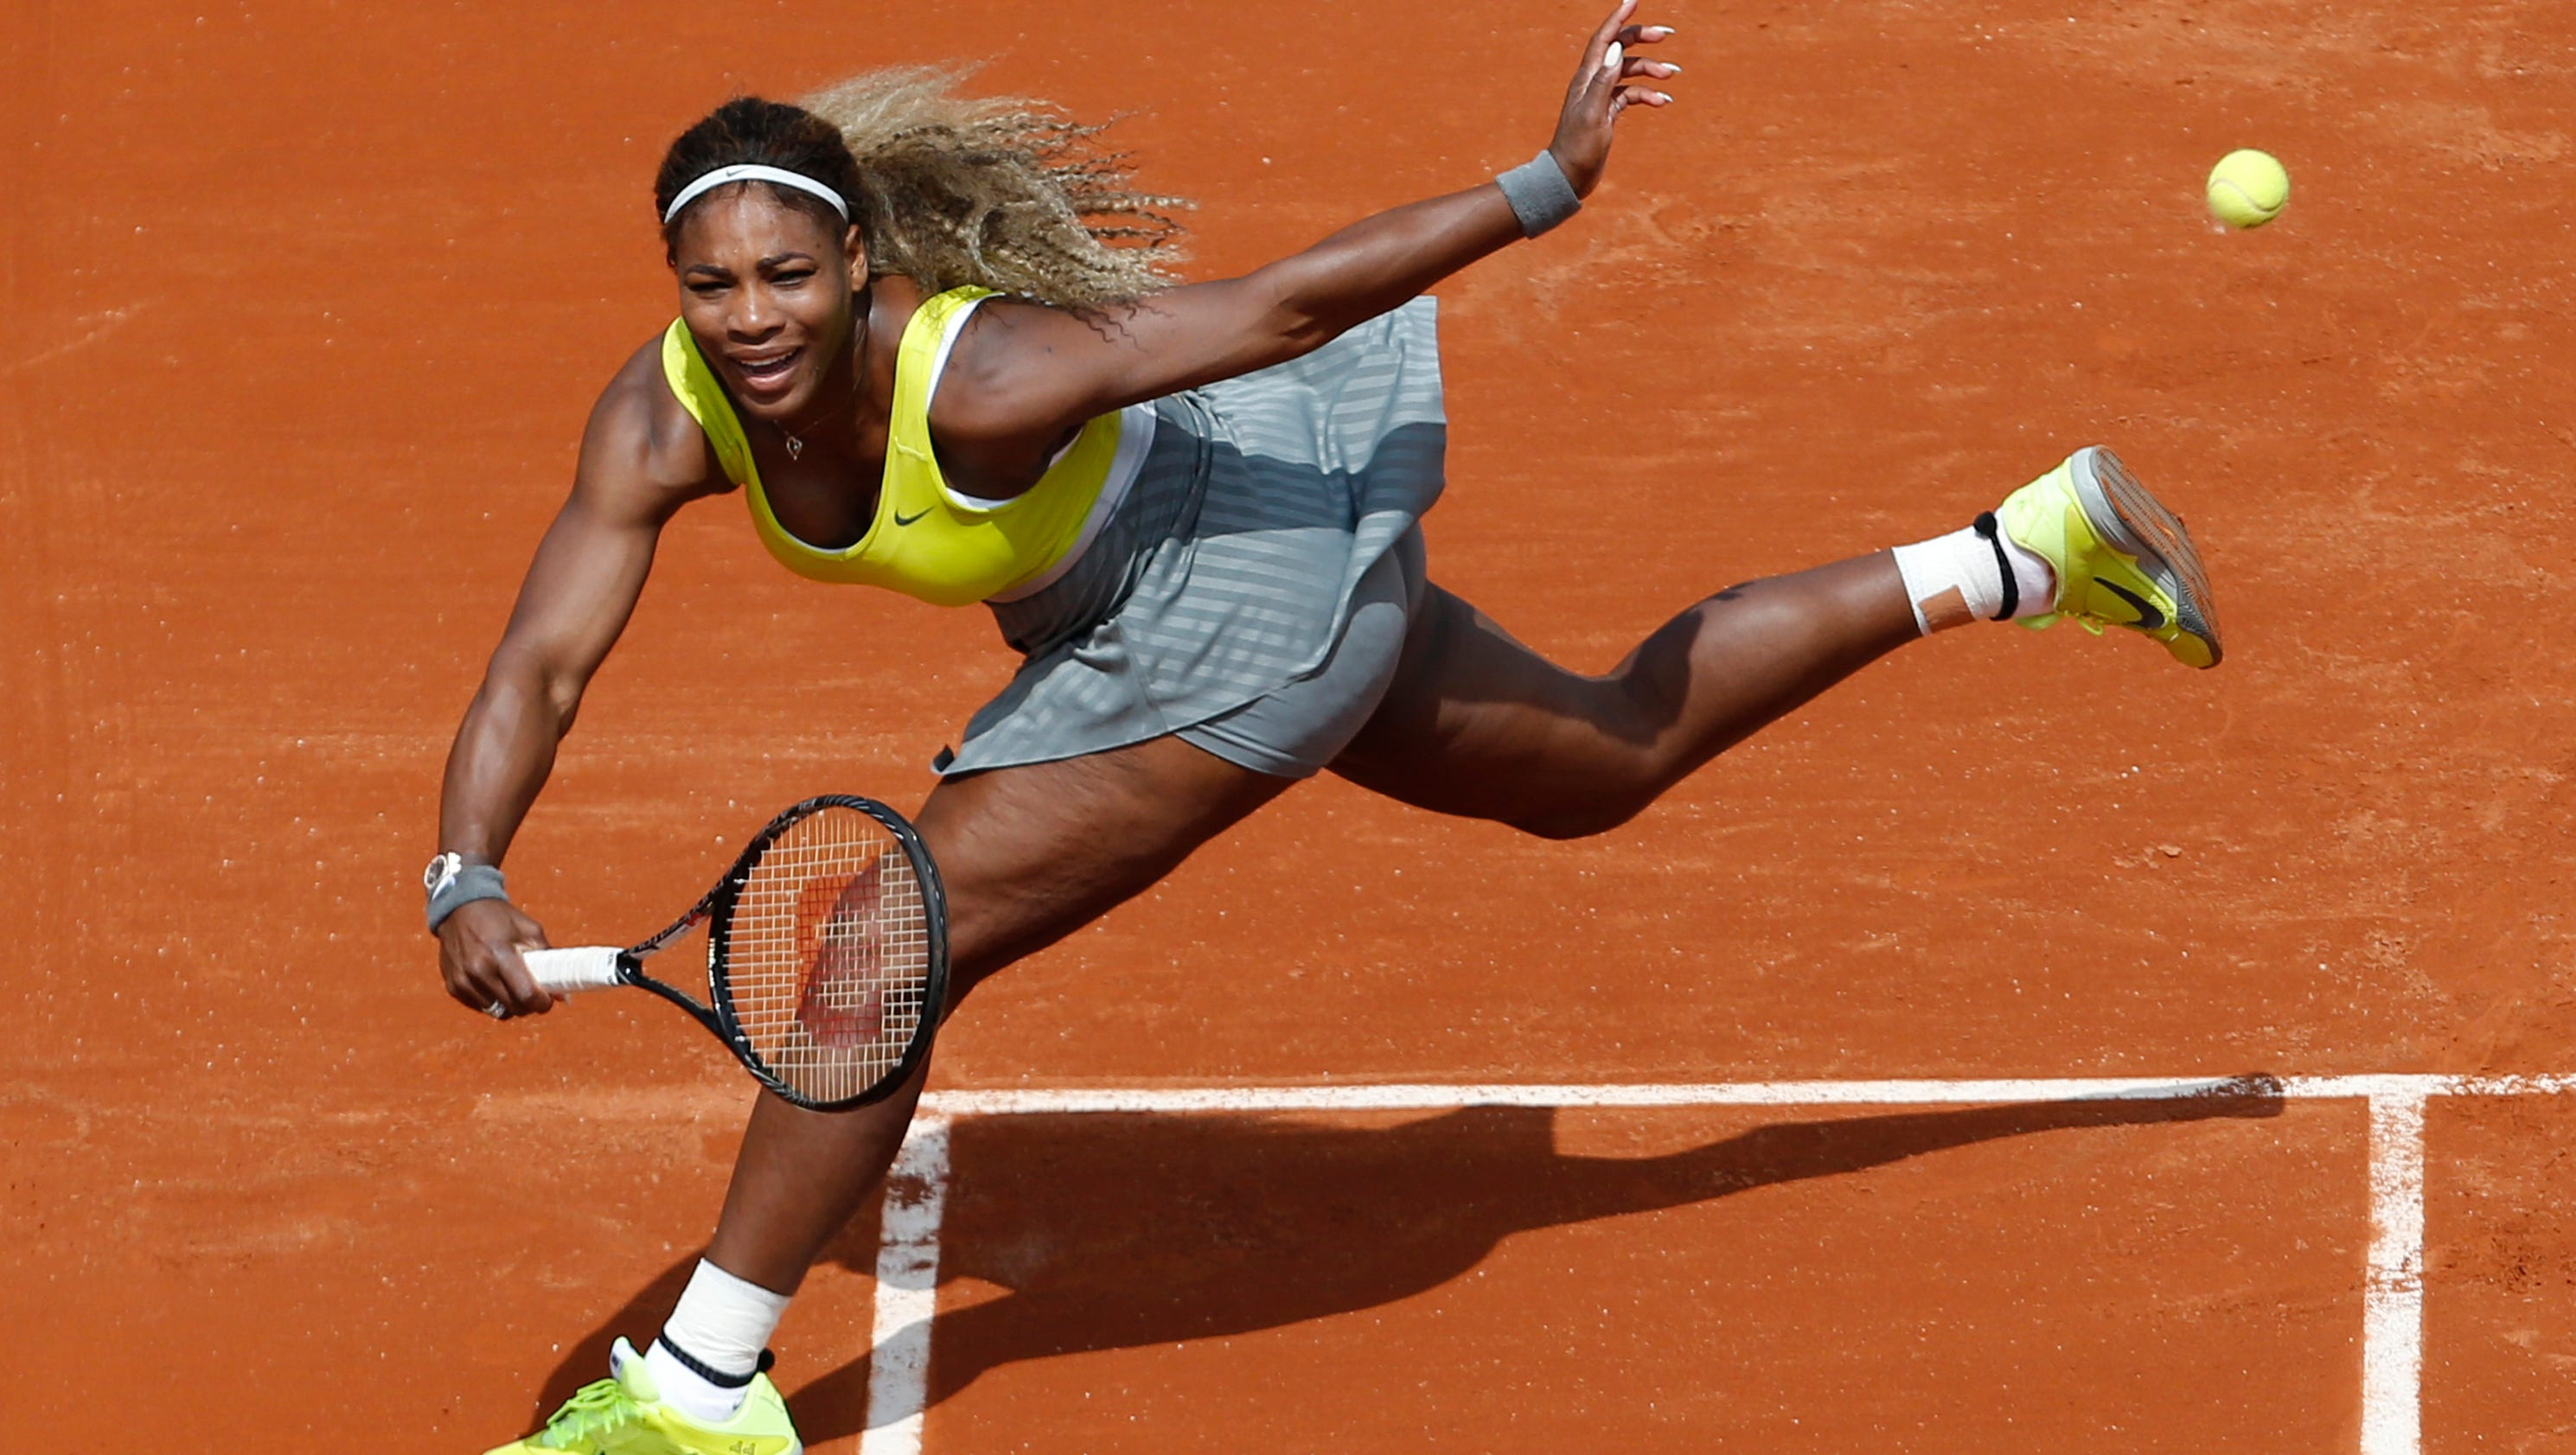 french open - photo #9